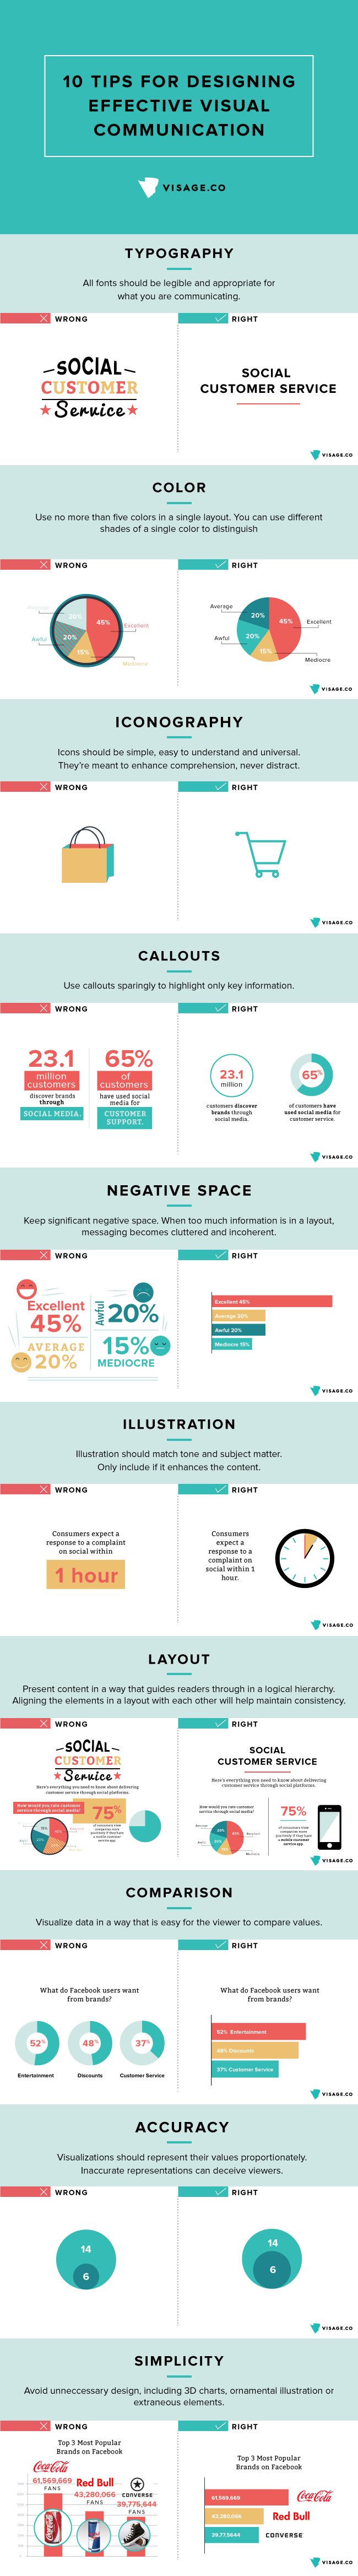 Your Guide To Designing Effective Visual Communication – infographic